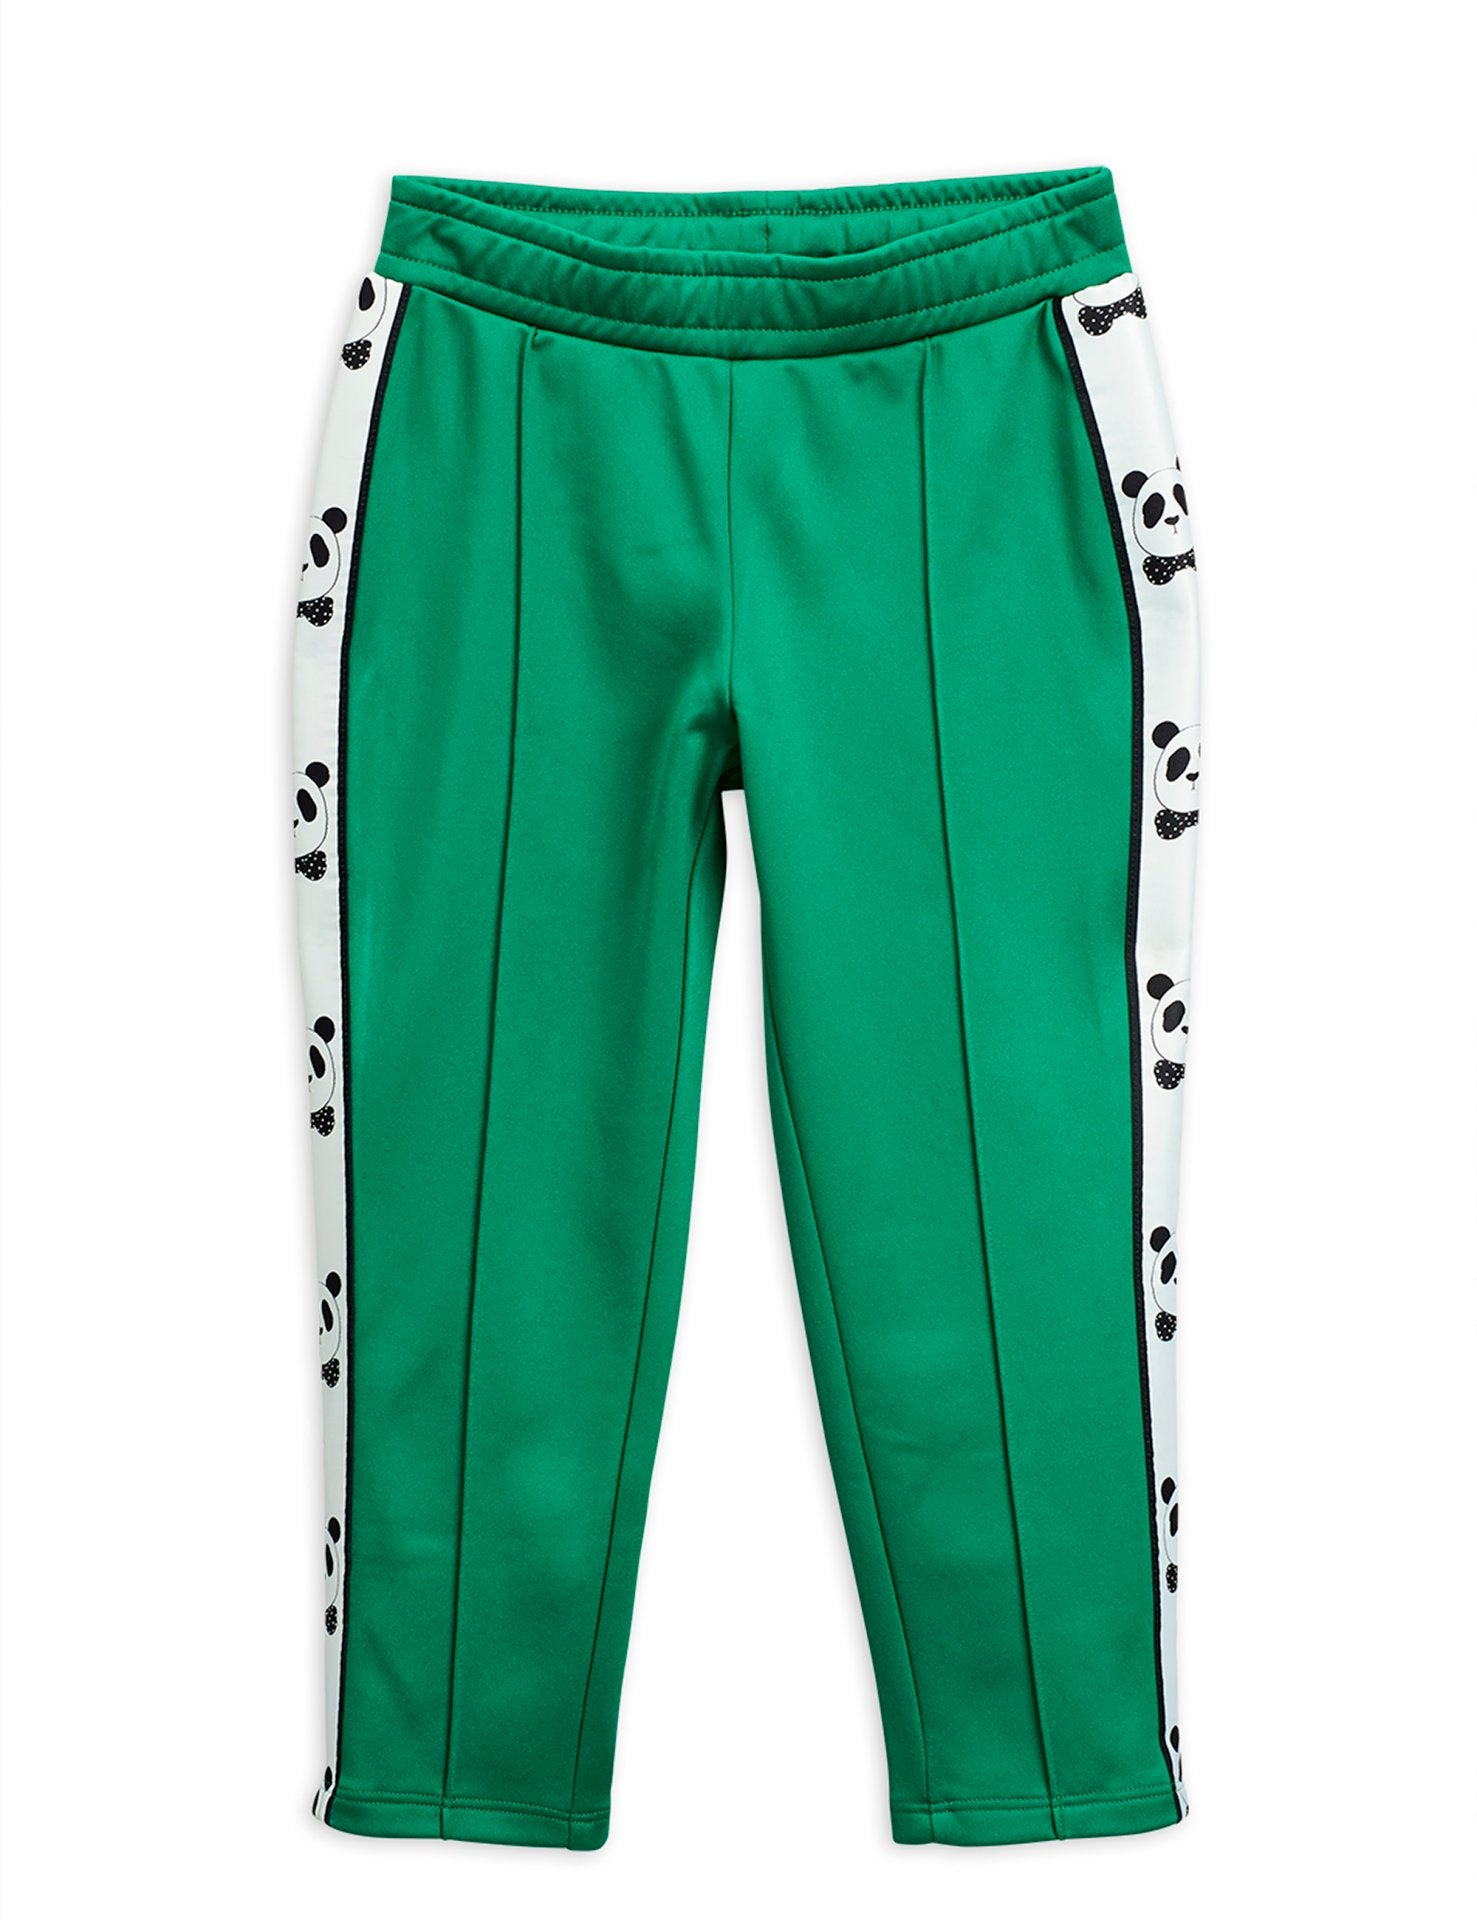 Panda Wct Trousers Green